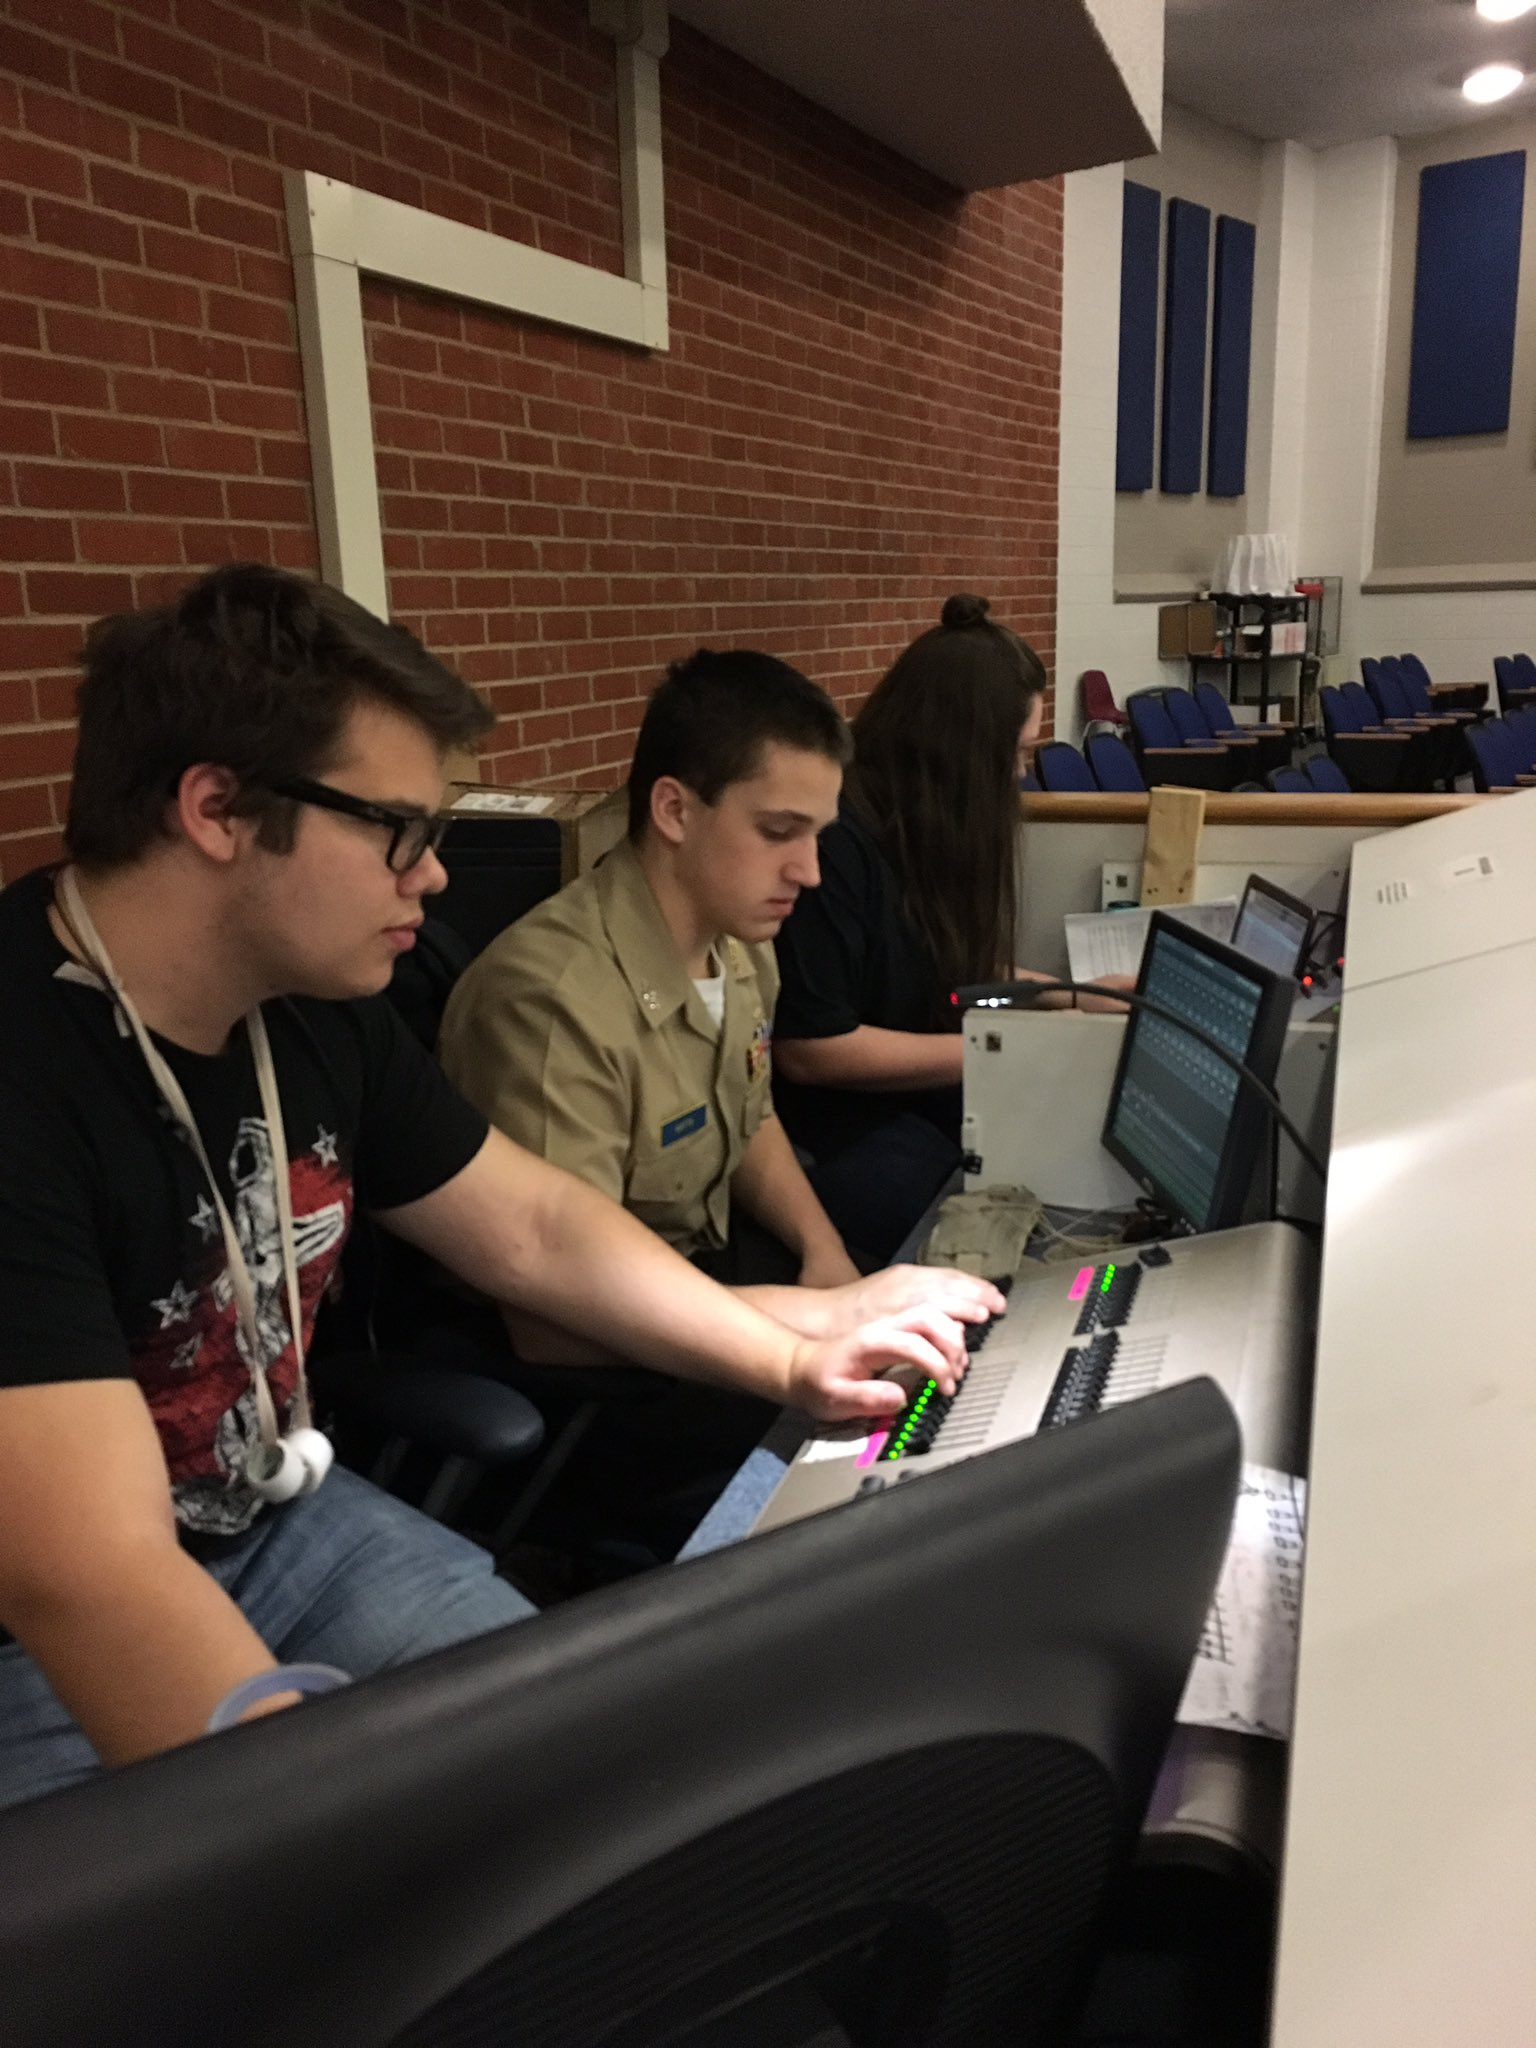 #OP Theatre crew programming light and sounds for Romeo and Juliet #pwcs #DLDay https://t.co/X2NklBV1zG